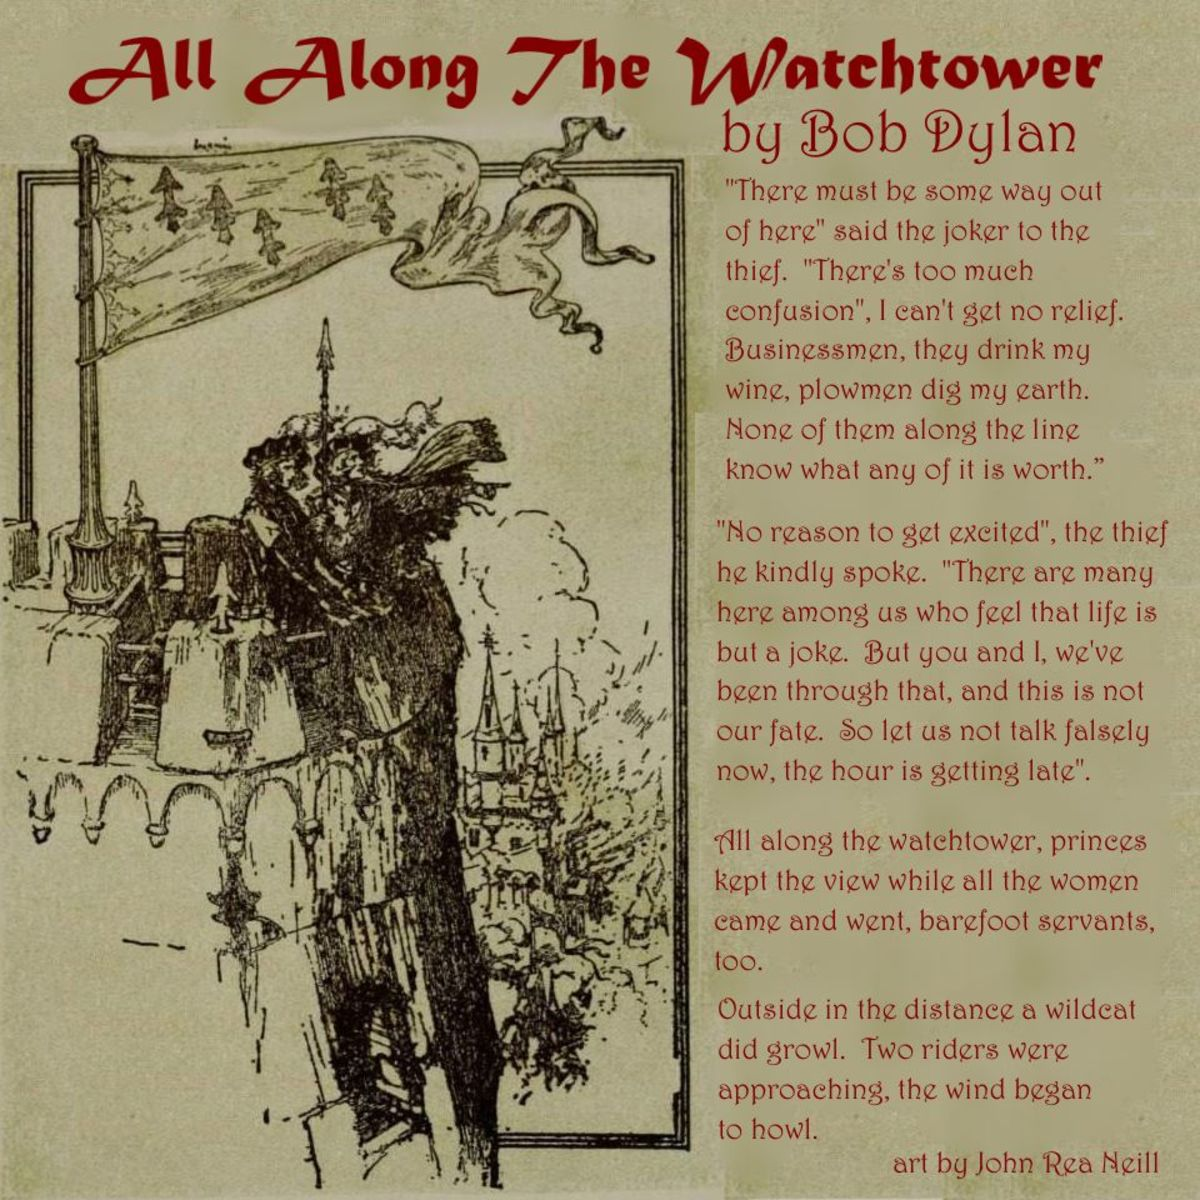 All Along the Watchtower Analysis